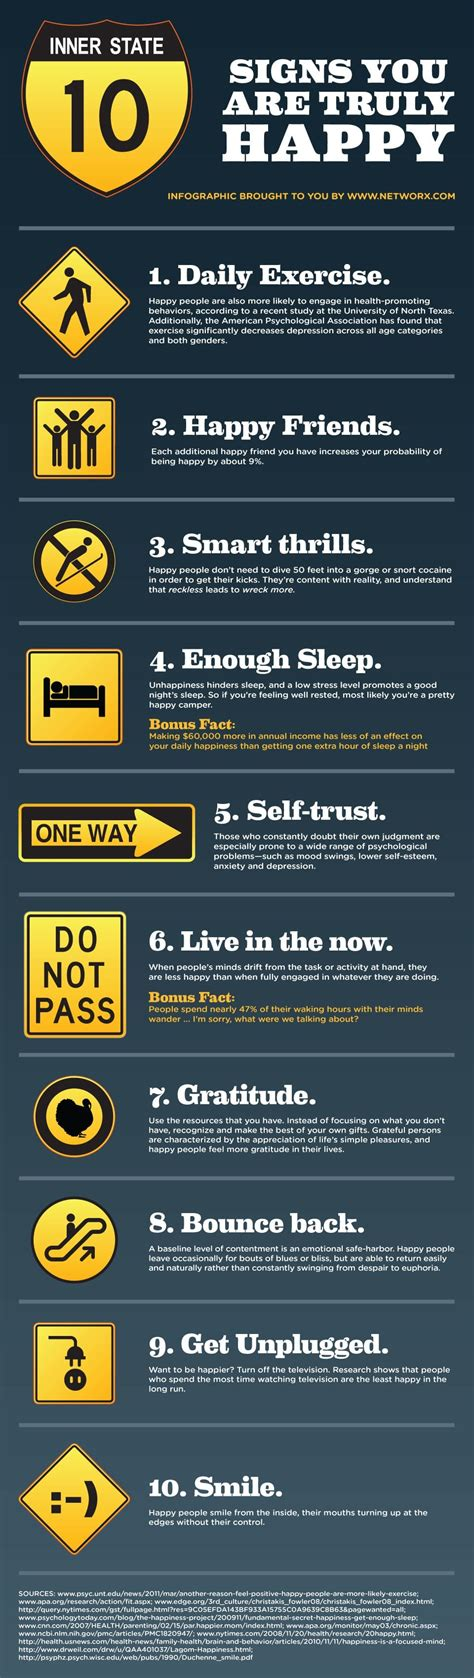 10 Signs You Are Truly Happy [infographic]  Bit Rebels. Eating Disorders Not Otherwise Specified. Top Ten Cloud Storage Providers. Adults With Adhd Treatment U S Fleet Tracking. Online Medical Learning Unsecured Loan Source. Buy Domain Names Online Brand Marketing Firms. Graduate School For Biology Majors. Personal Injury Lawyer Tampa Fl. Music Business Programs Free Scheduling Tools